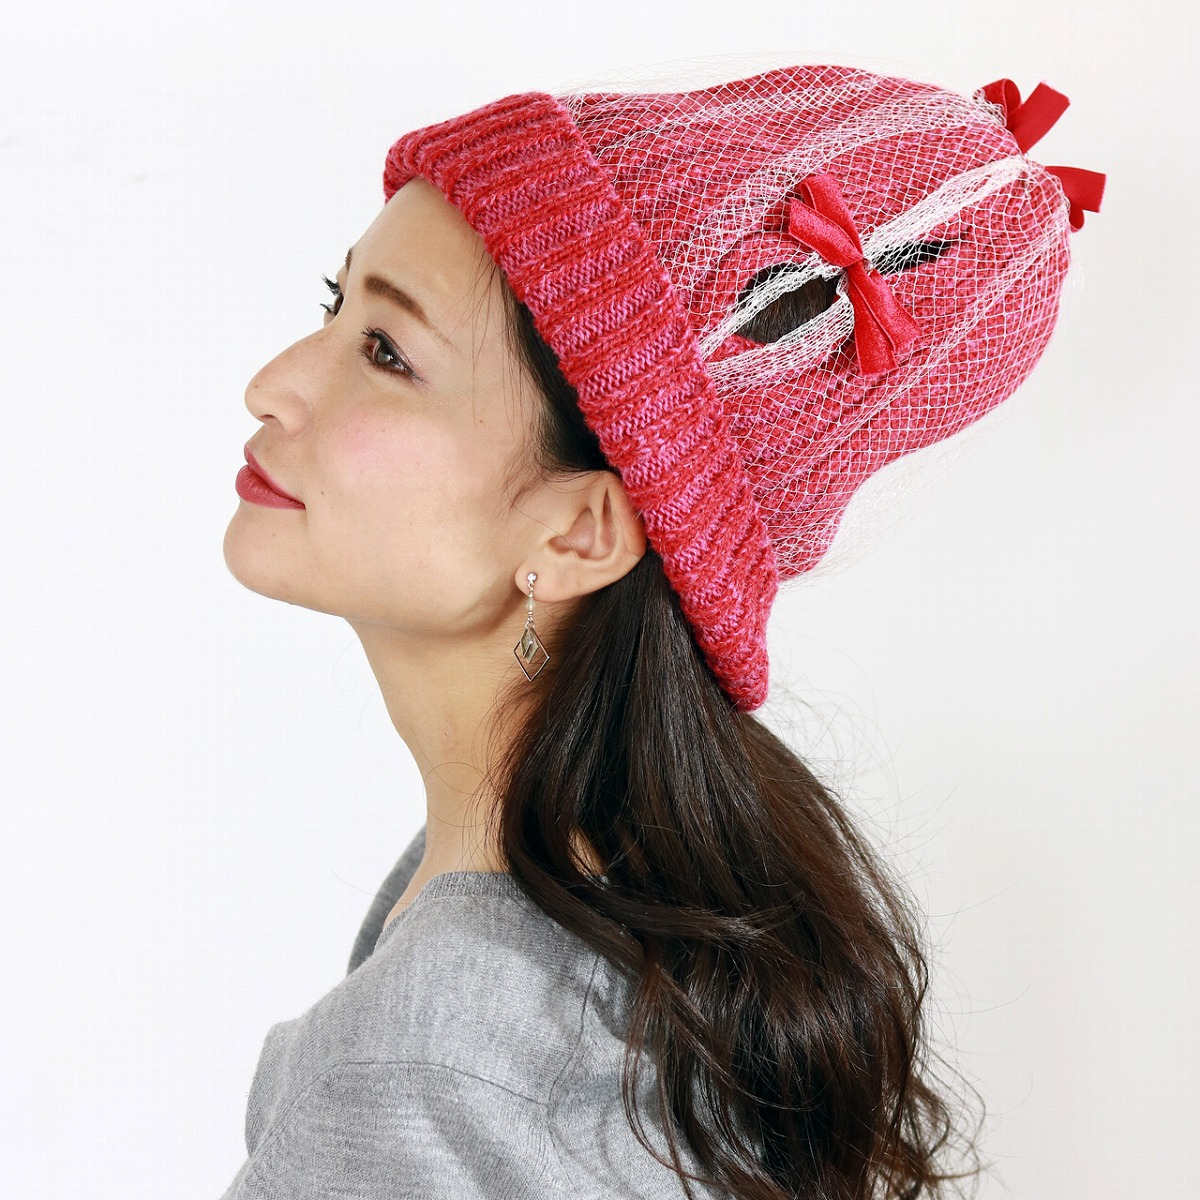 ELEHELM HAT STORE: It is a present Christmas gift in the product ...